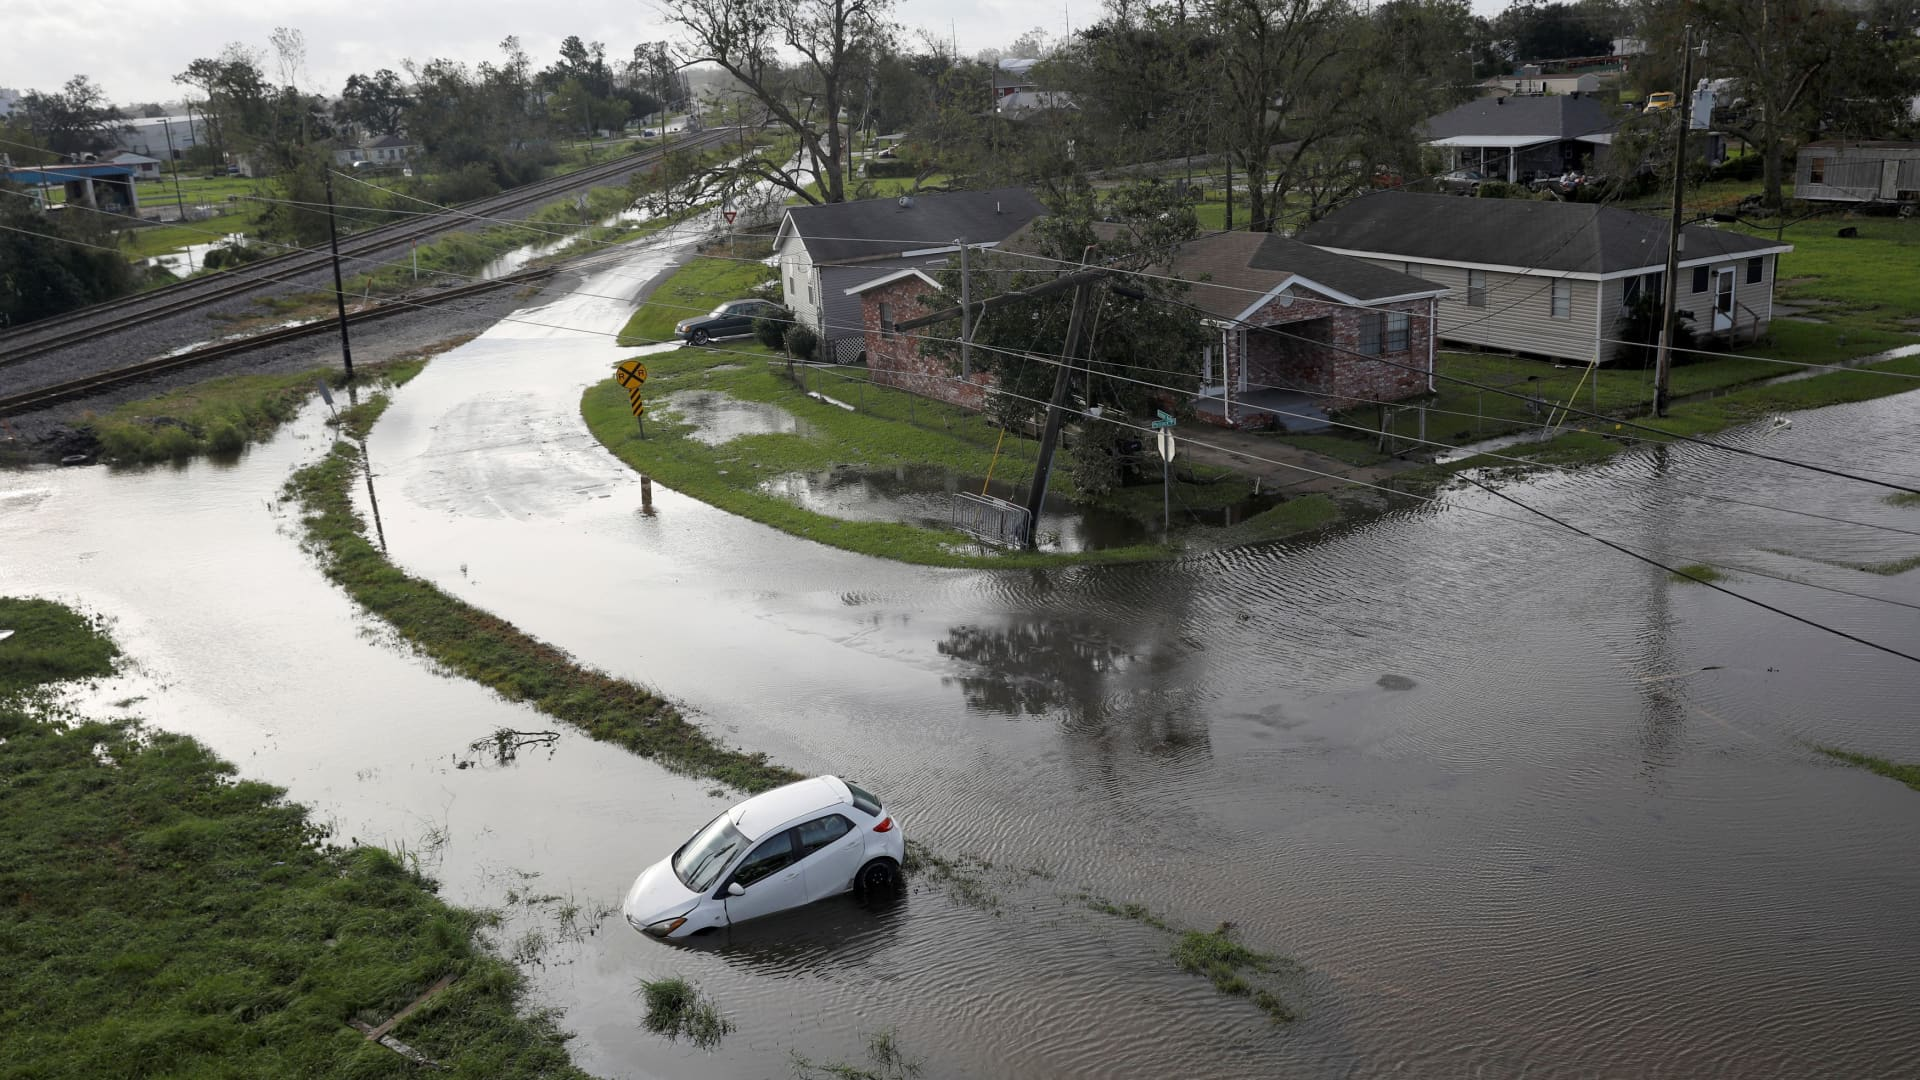 Flooded streets are pictured after Hurricane Ida made landfall in Louisiana, in Kenner, Louisiana,August 30, 2021.